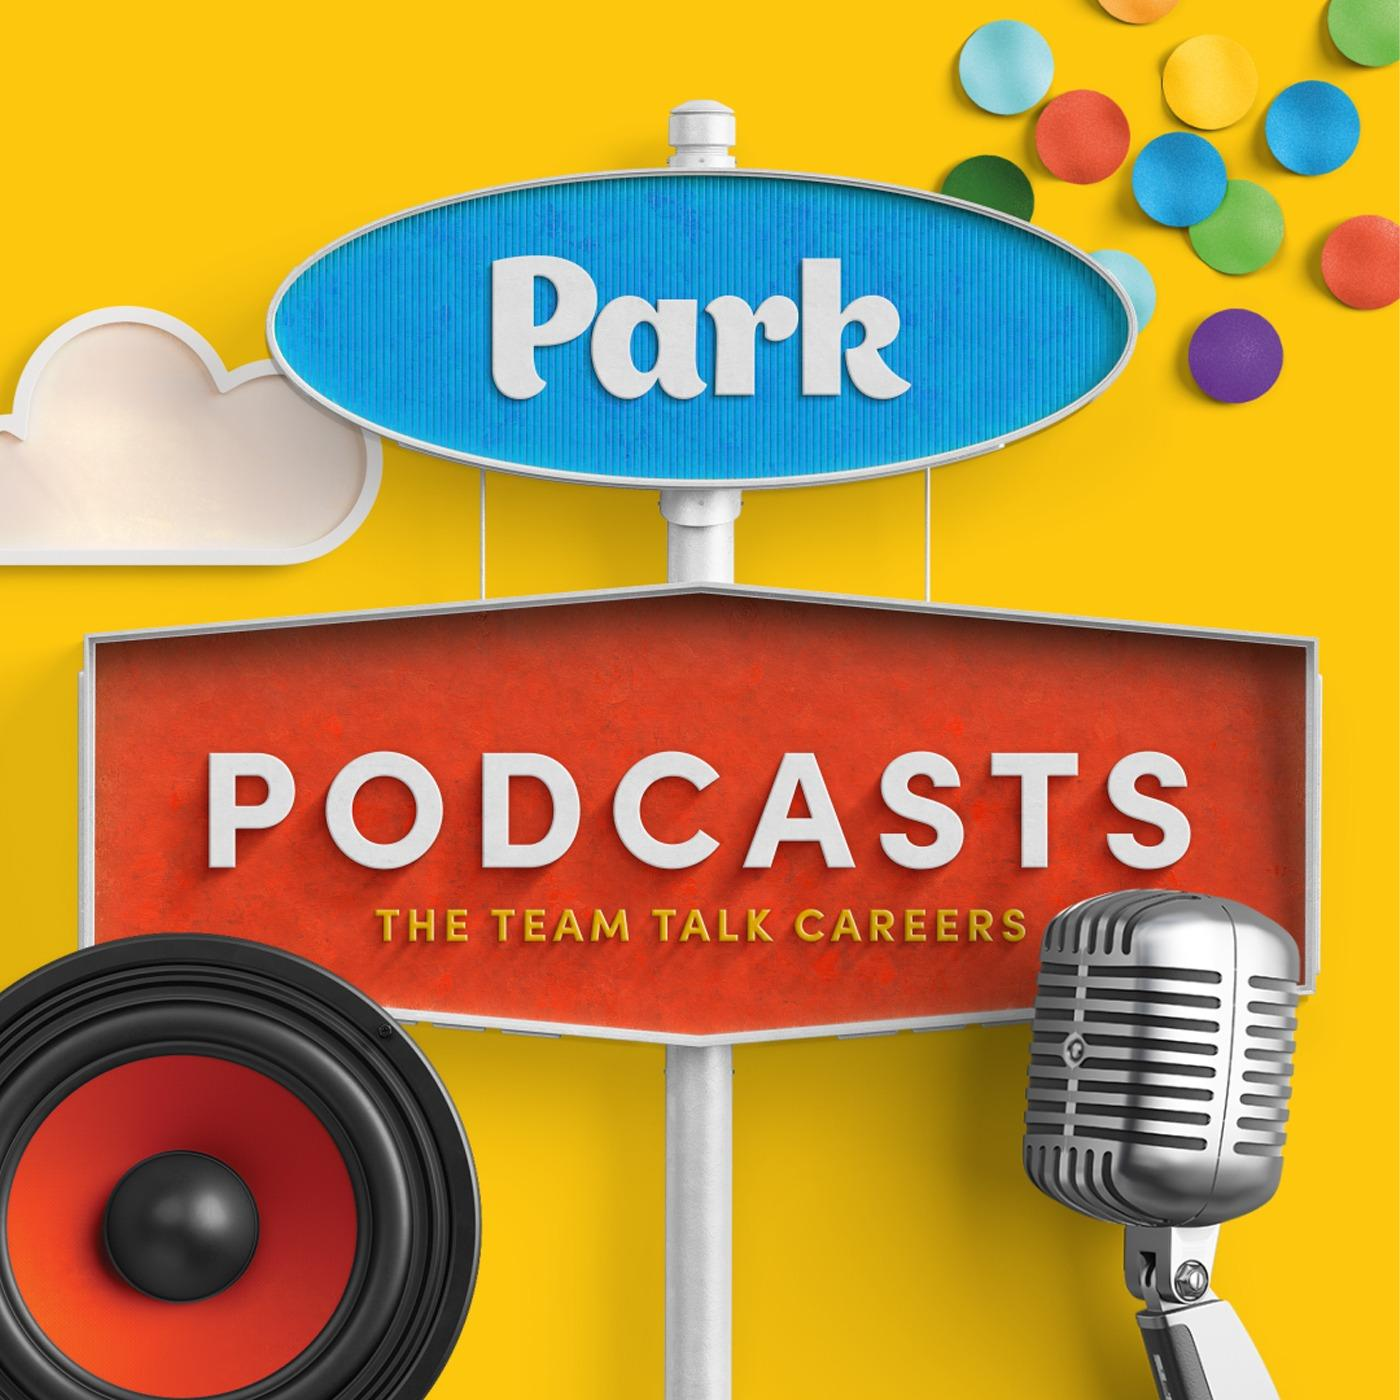 Podcasting with Park